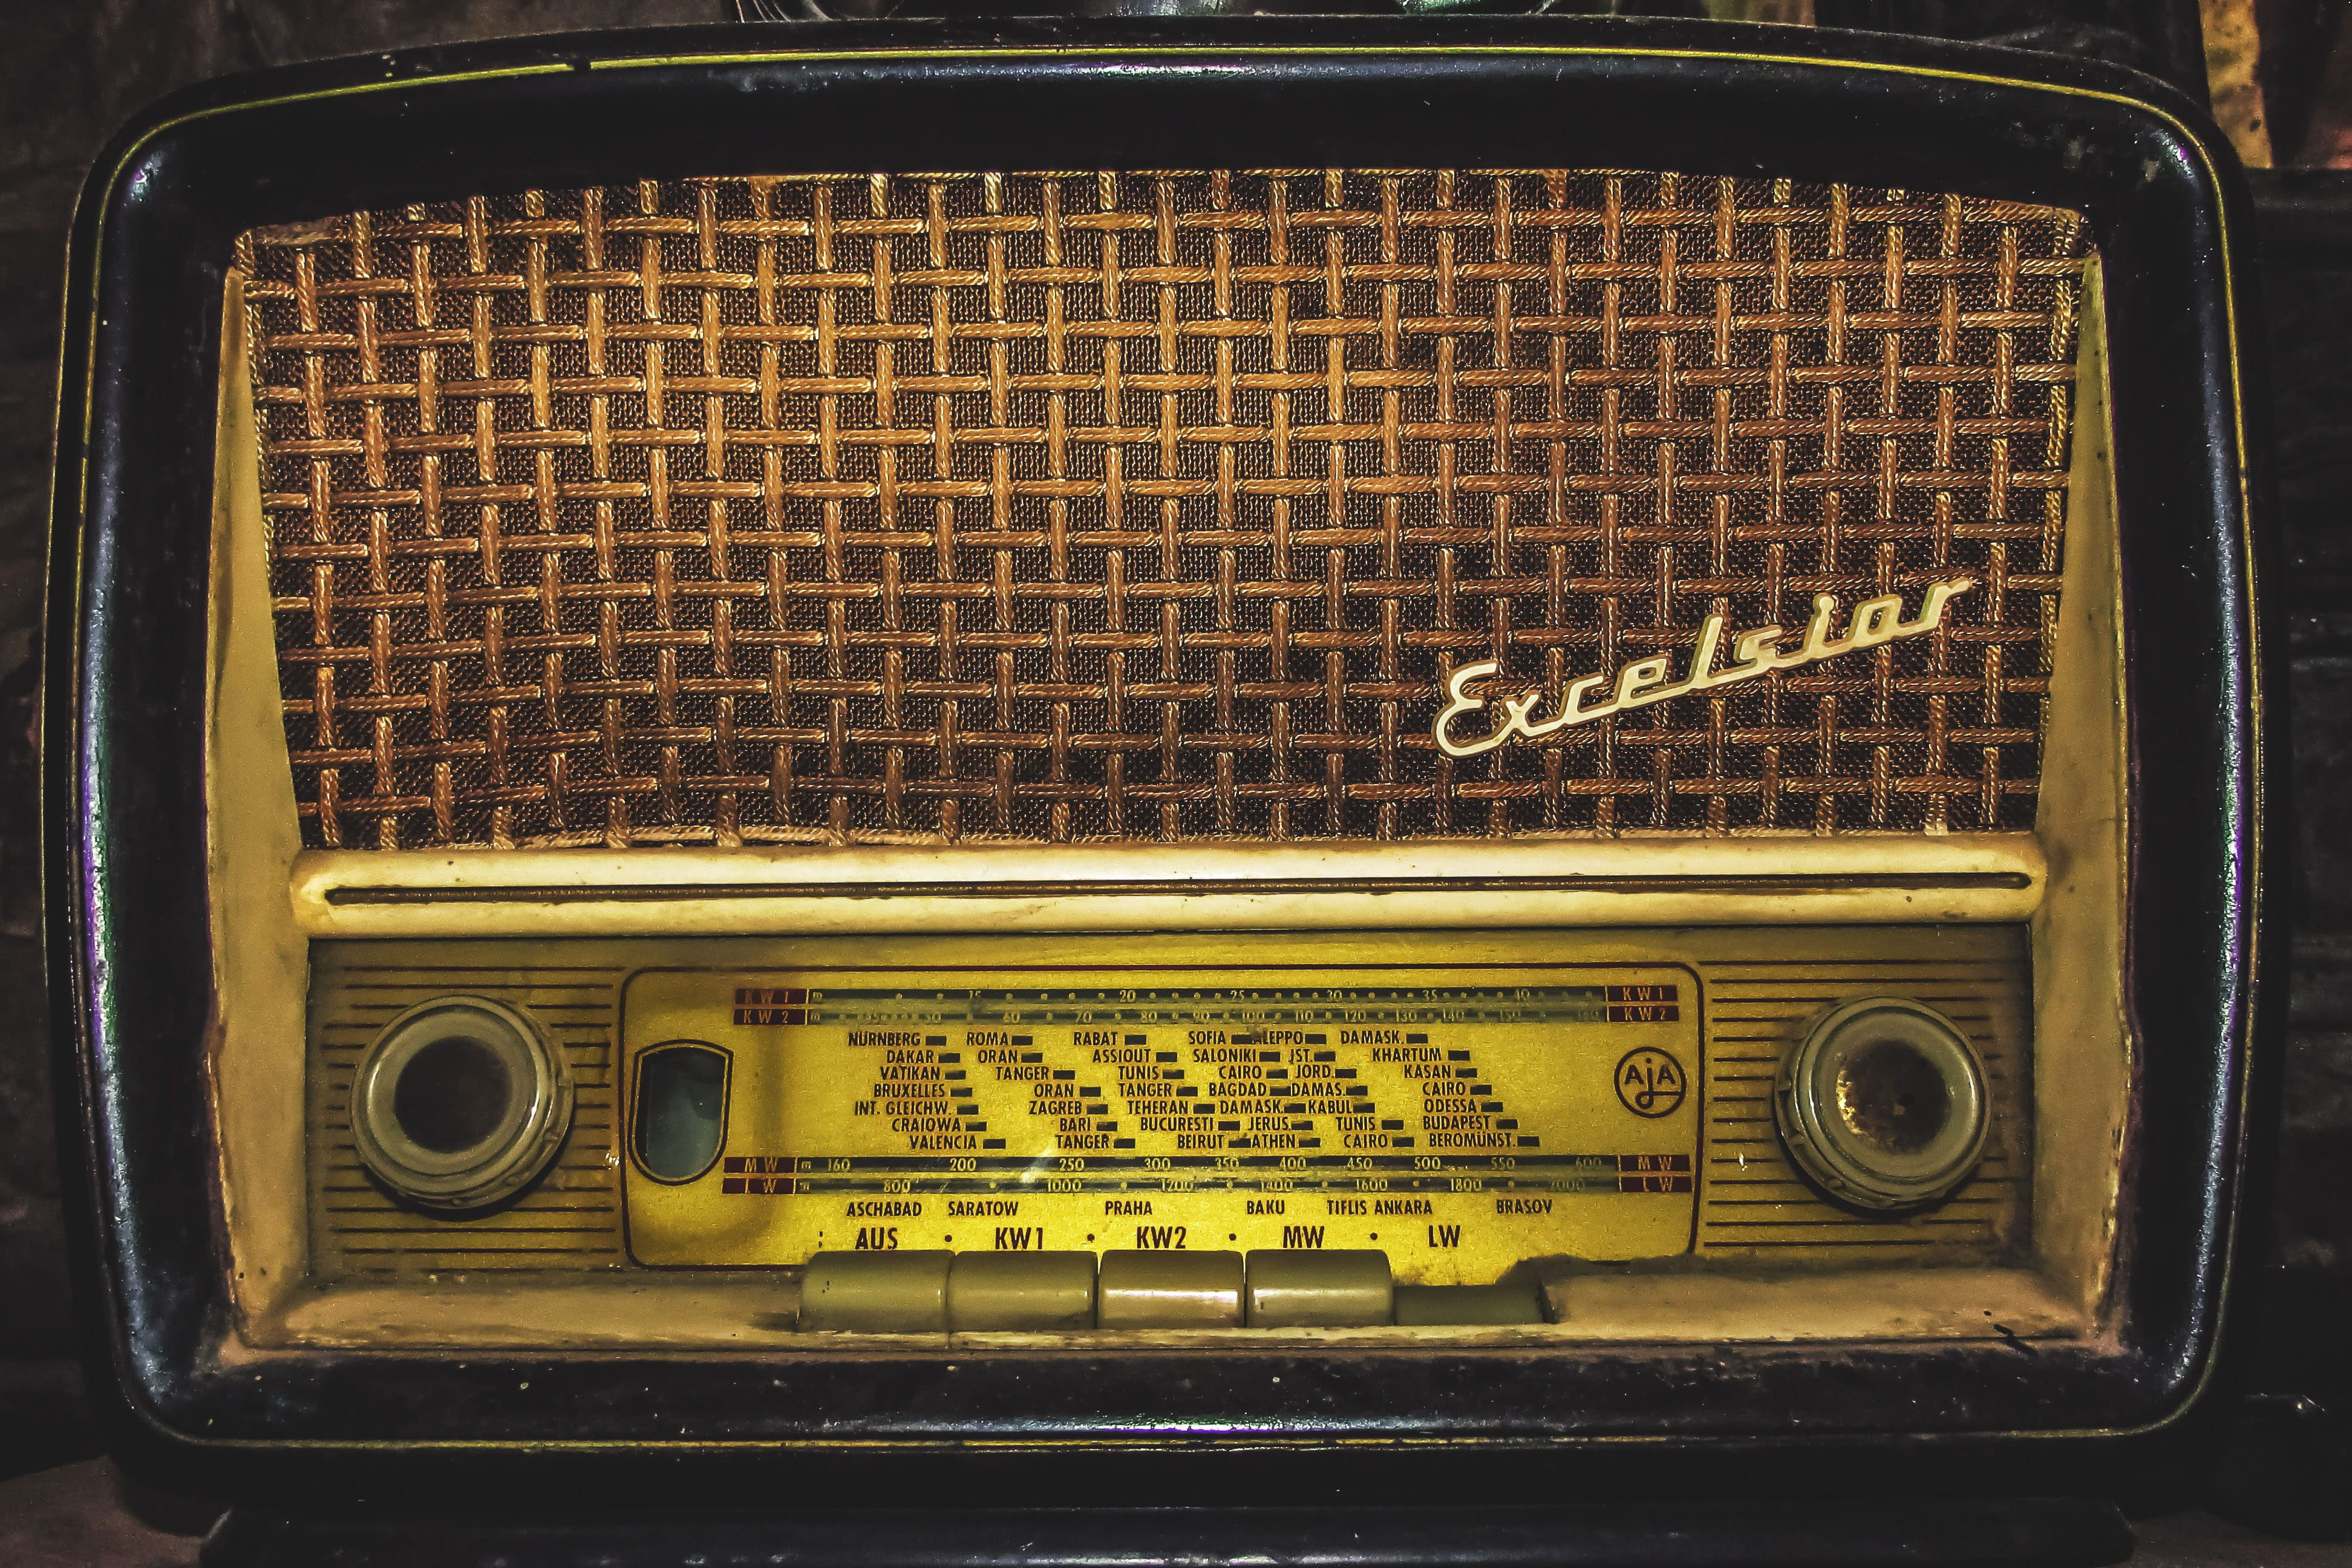 An Old Retro Vintage Radio Wallpaper Technology Music Retro Styled Old Fashioned In 2020 Vintage Wallpaper Vintage Radio Electronics Wallpaper